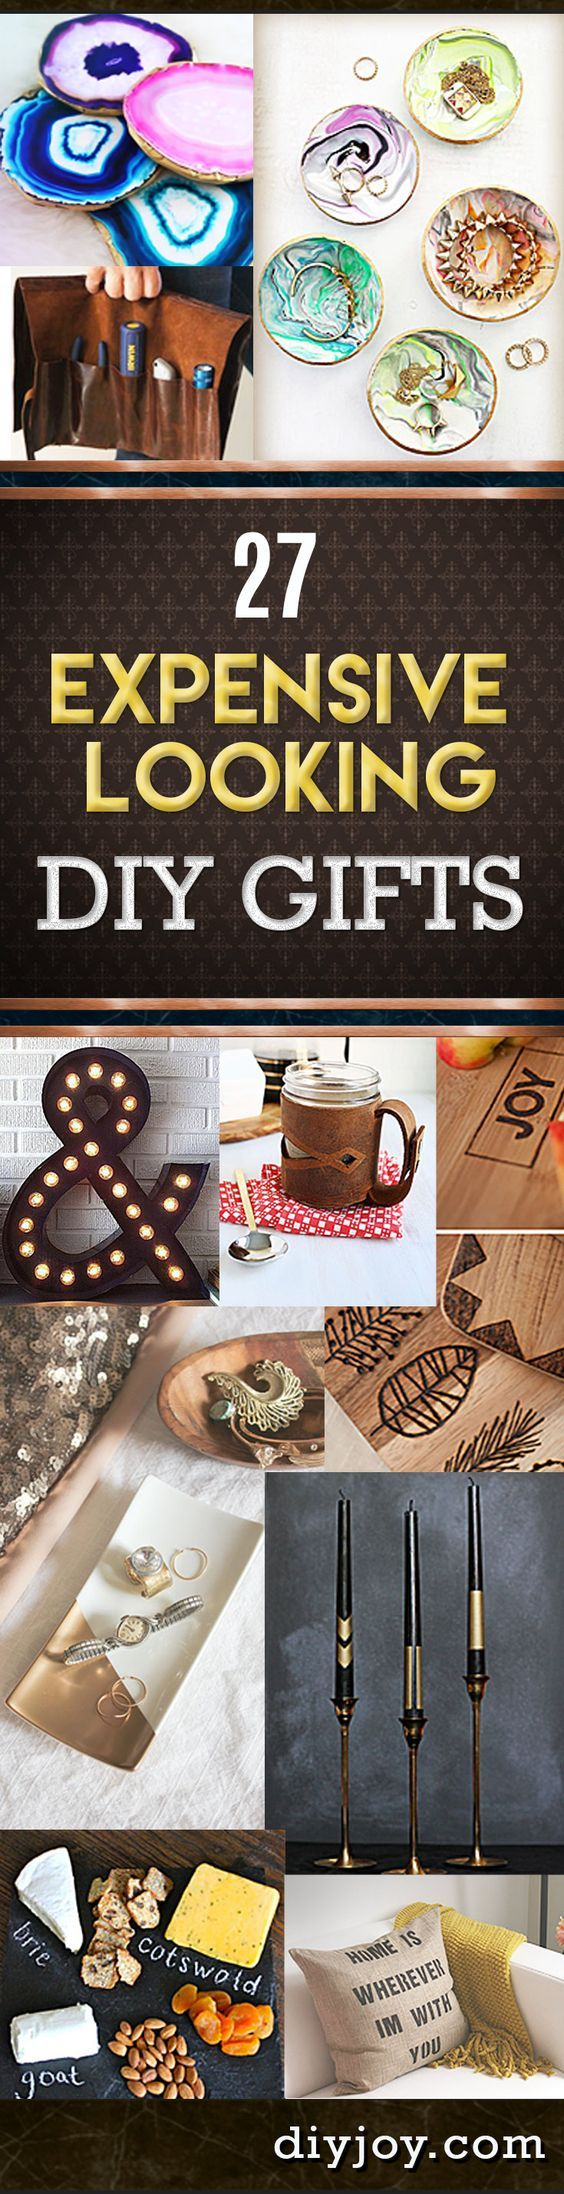 27 expensive looking inexpensive diy gifts cheap diy christmas gifts and do it yourself ideas for homemade holiday presents on a budget httpdiyjoycheap diy gifts ideas solutioingenieria Images